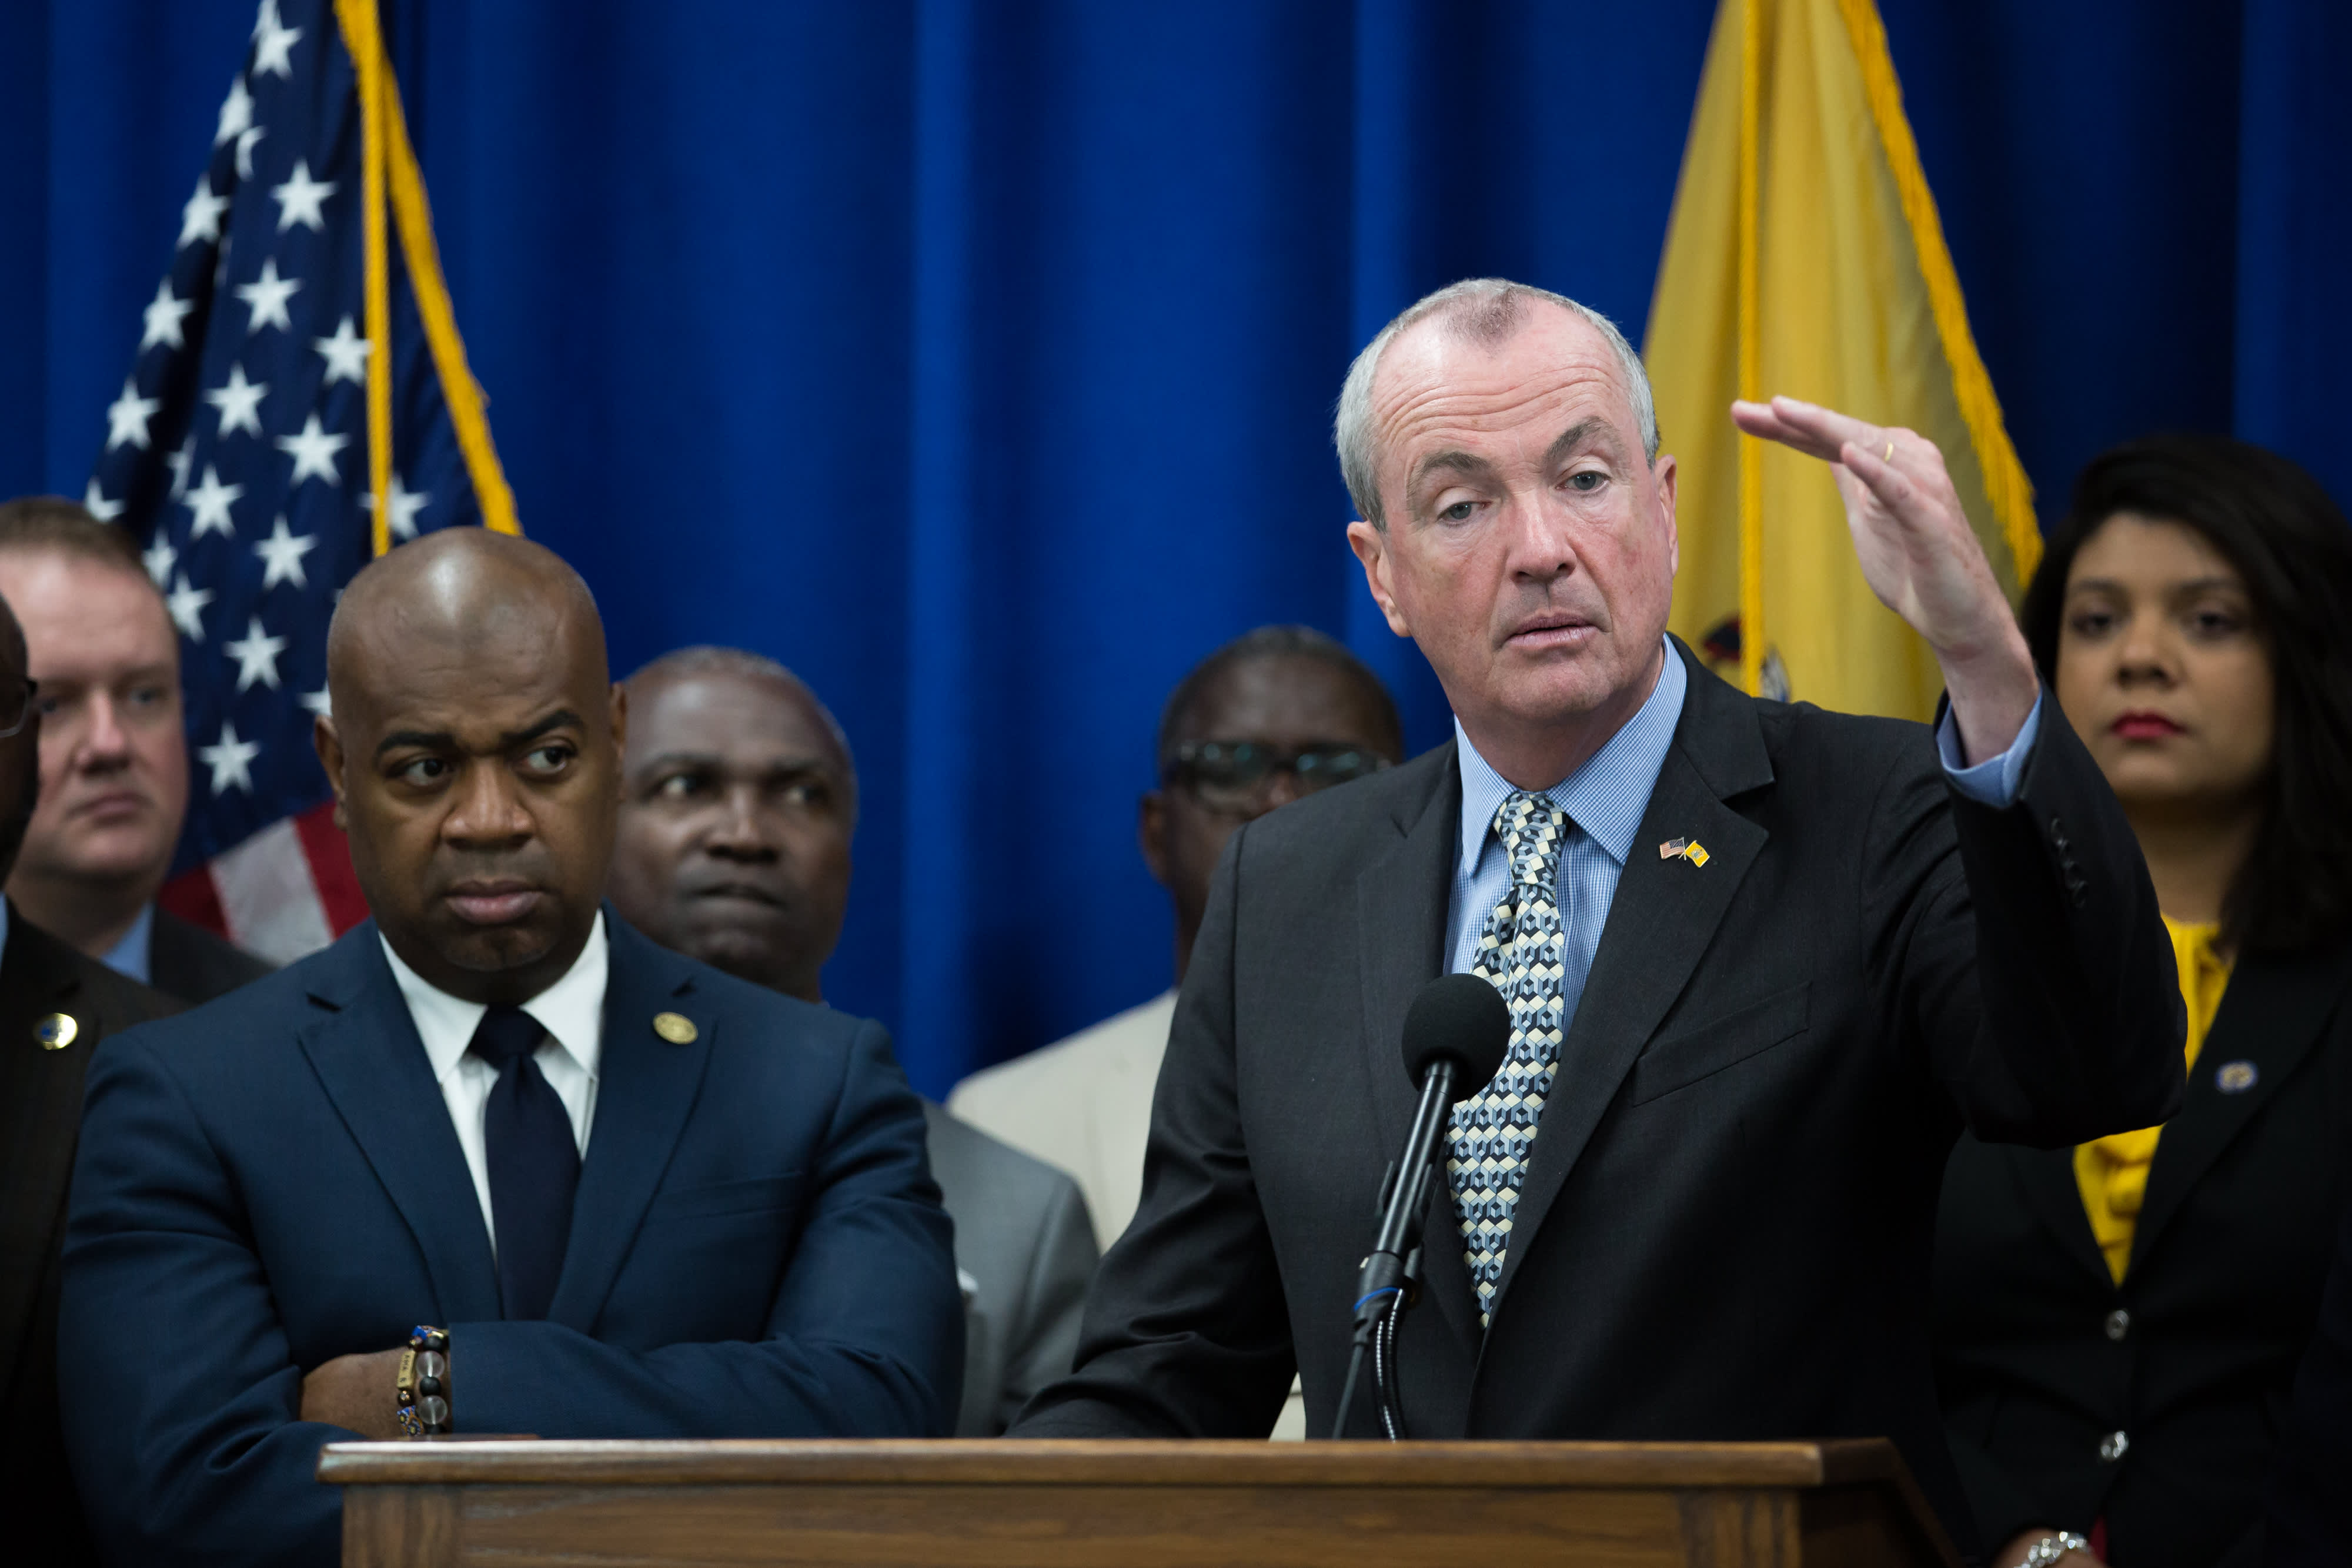 Federal Support For Potent New >> New Jersey Gov Phil Murphy Signs 15 Per Hour Minimum Wage Into Law